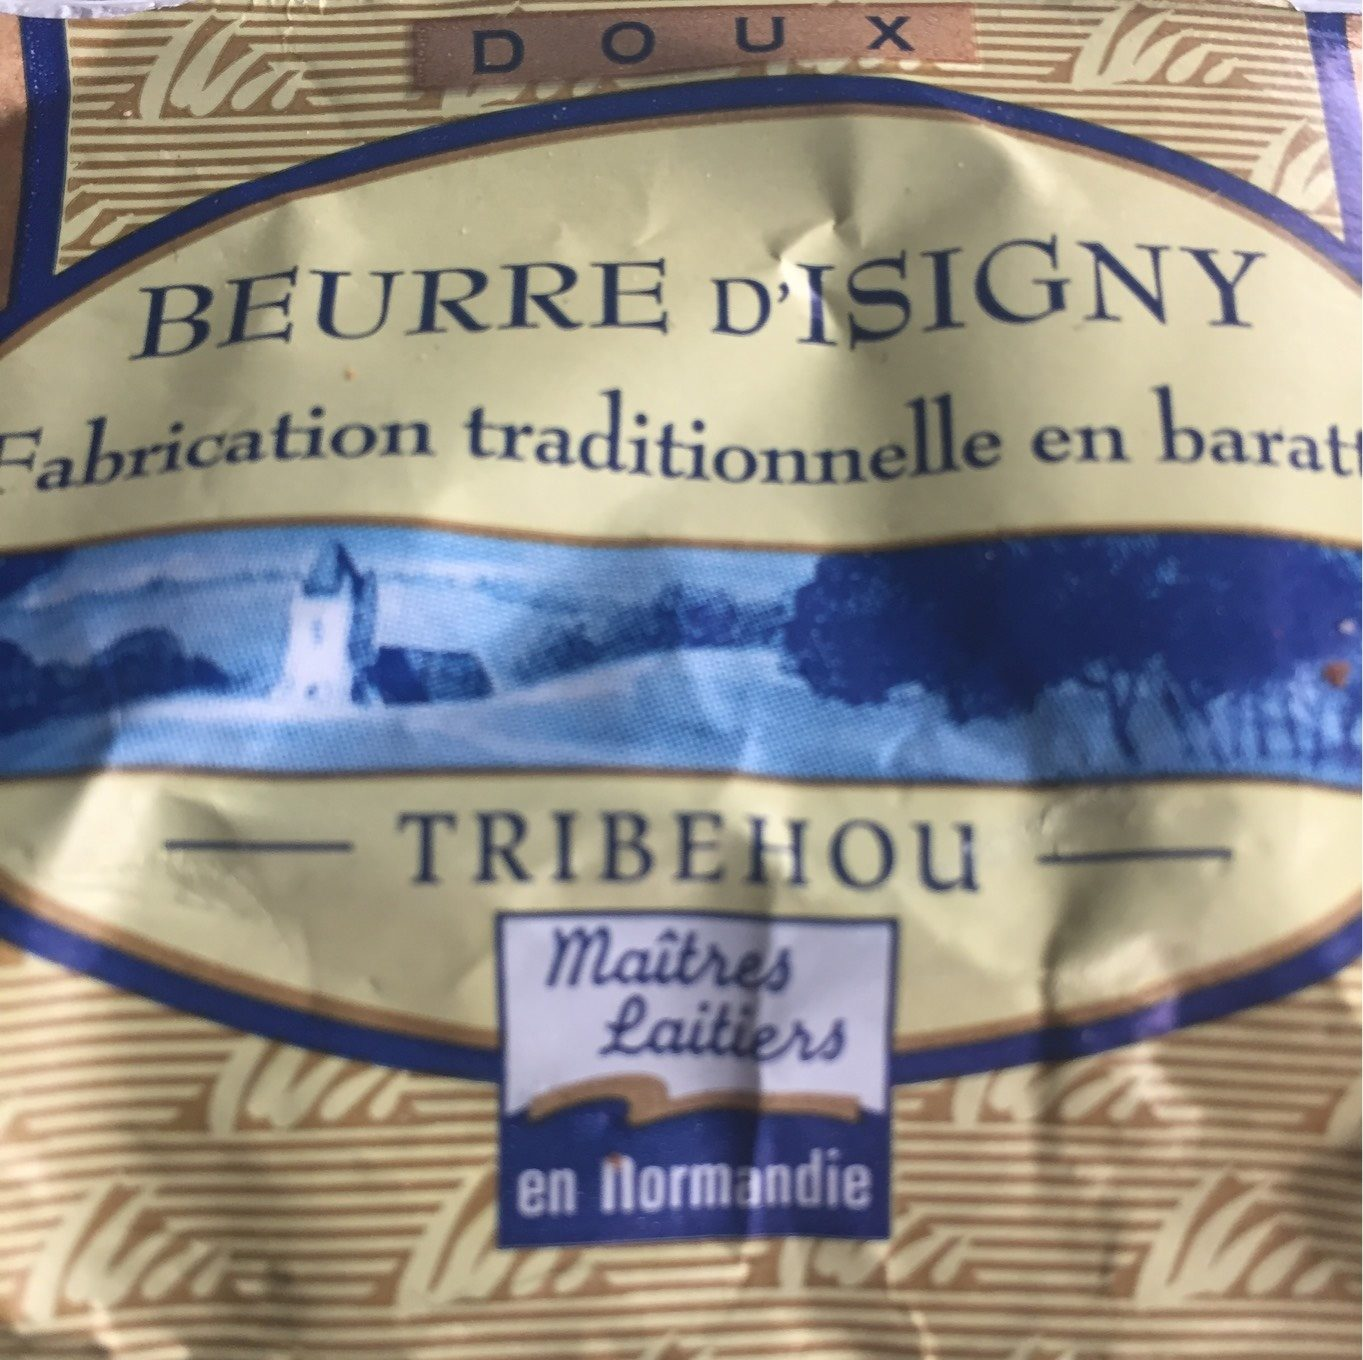 Beurre d'Isigny - Product